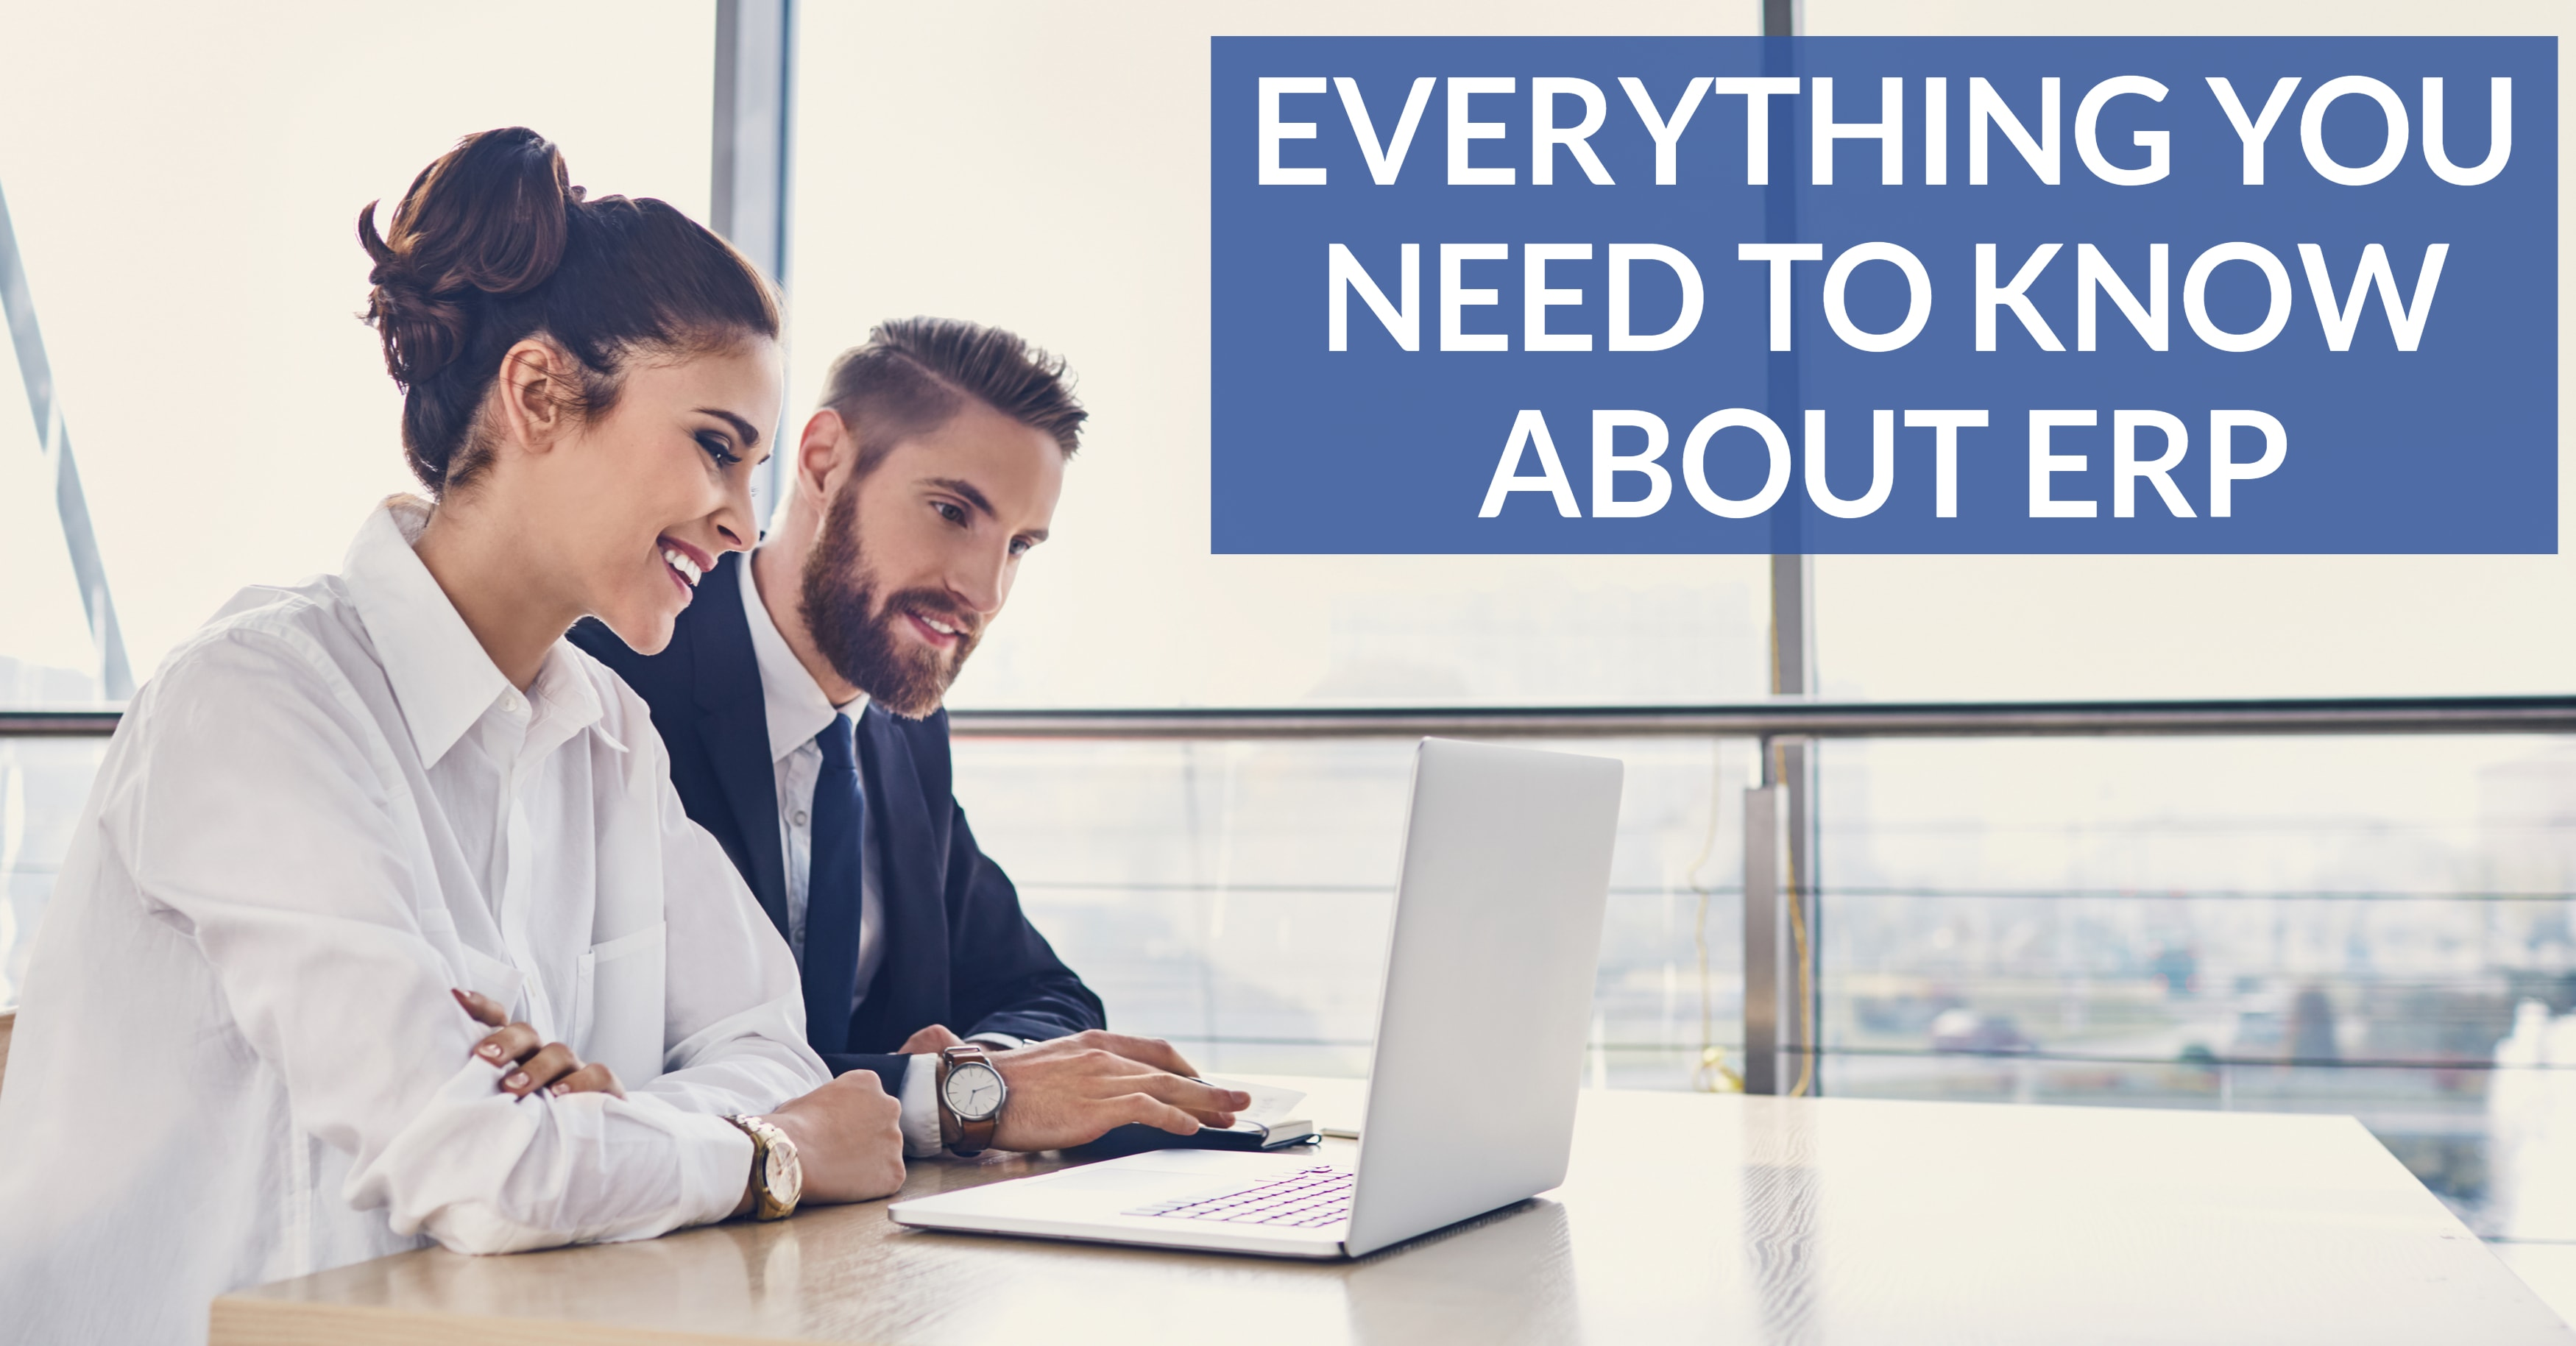 Everything You Need to Know About ERP